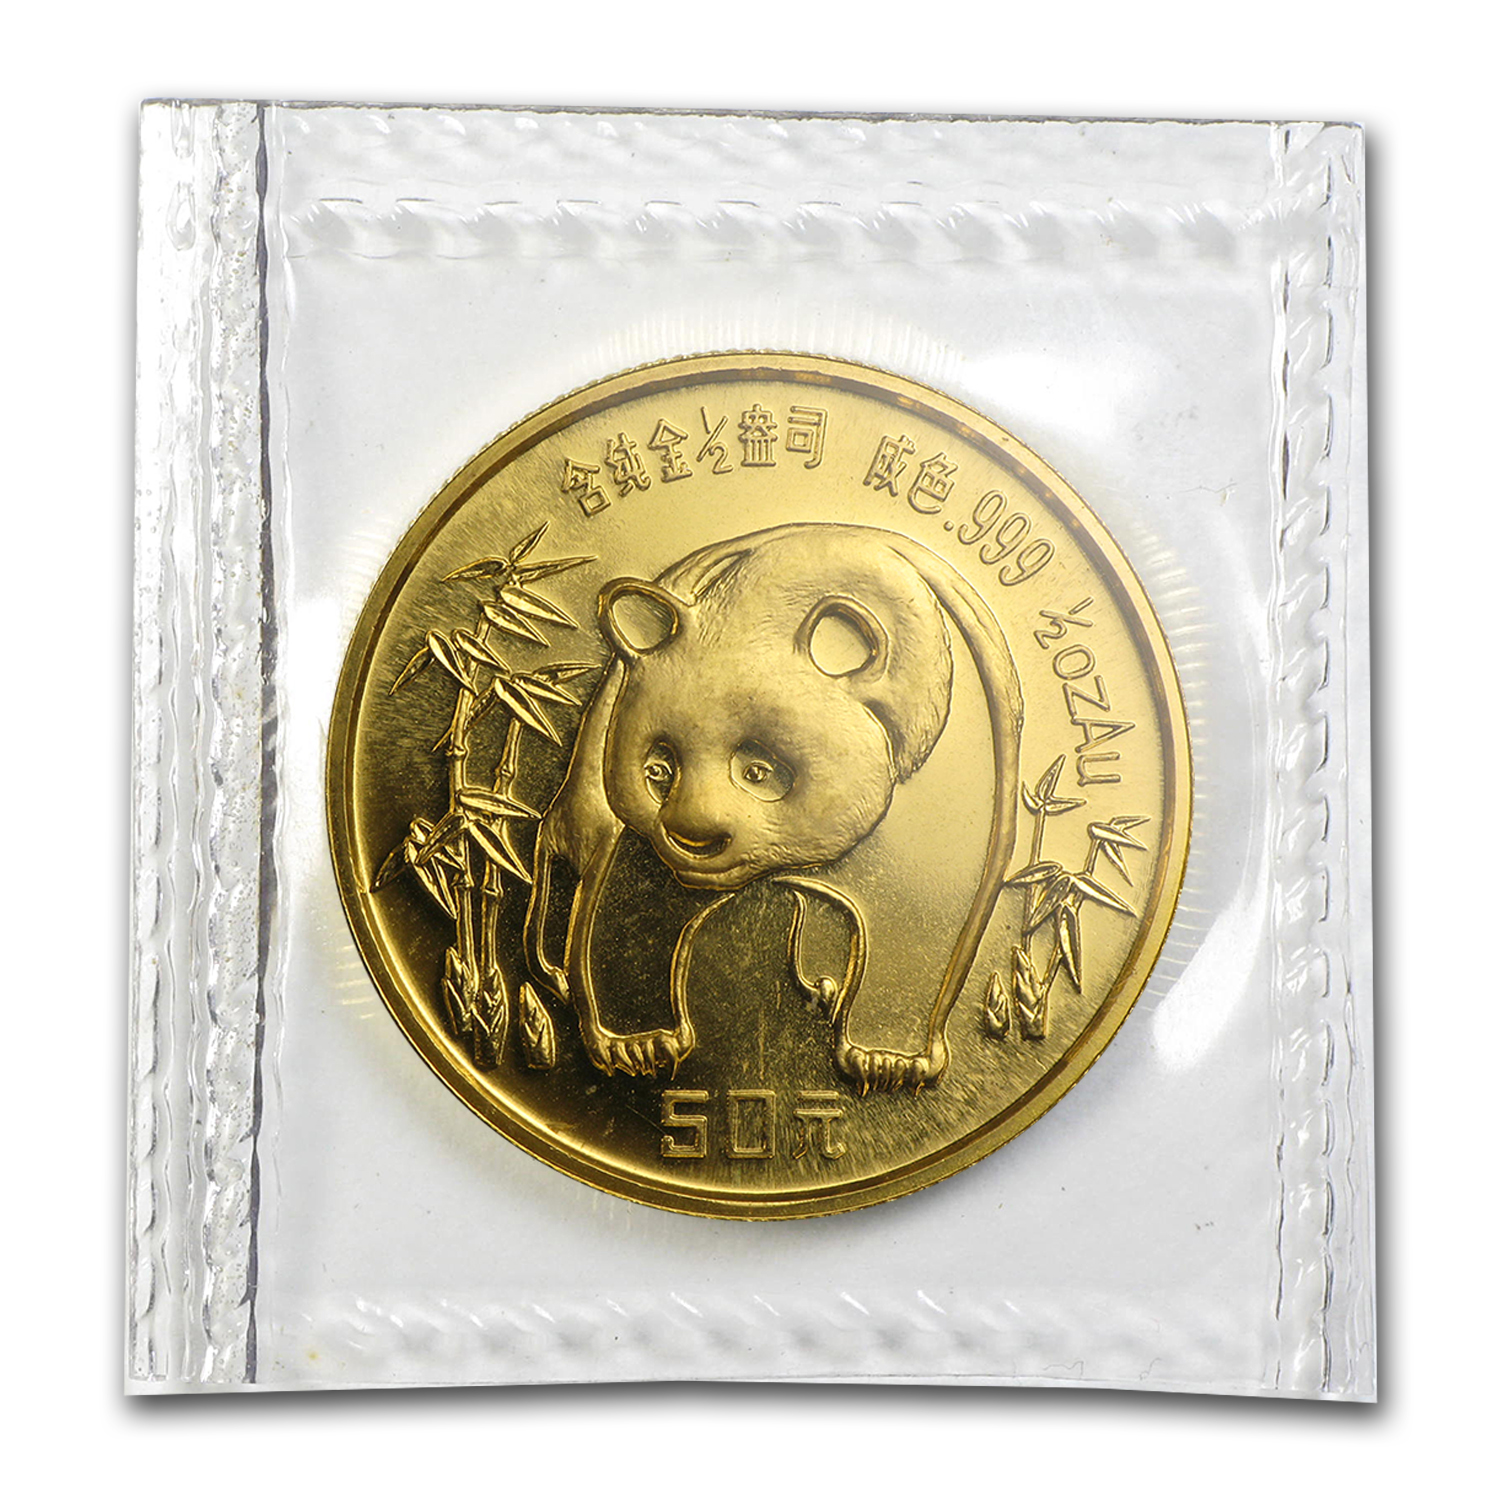 1986 China 1/2 oz Gold Panda BU (Sealed)